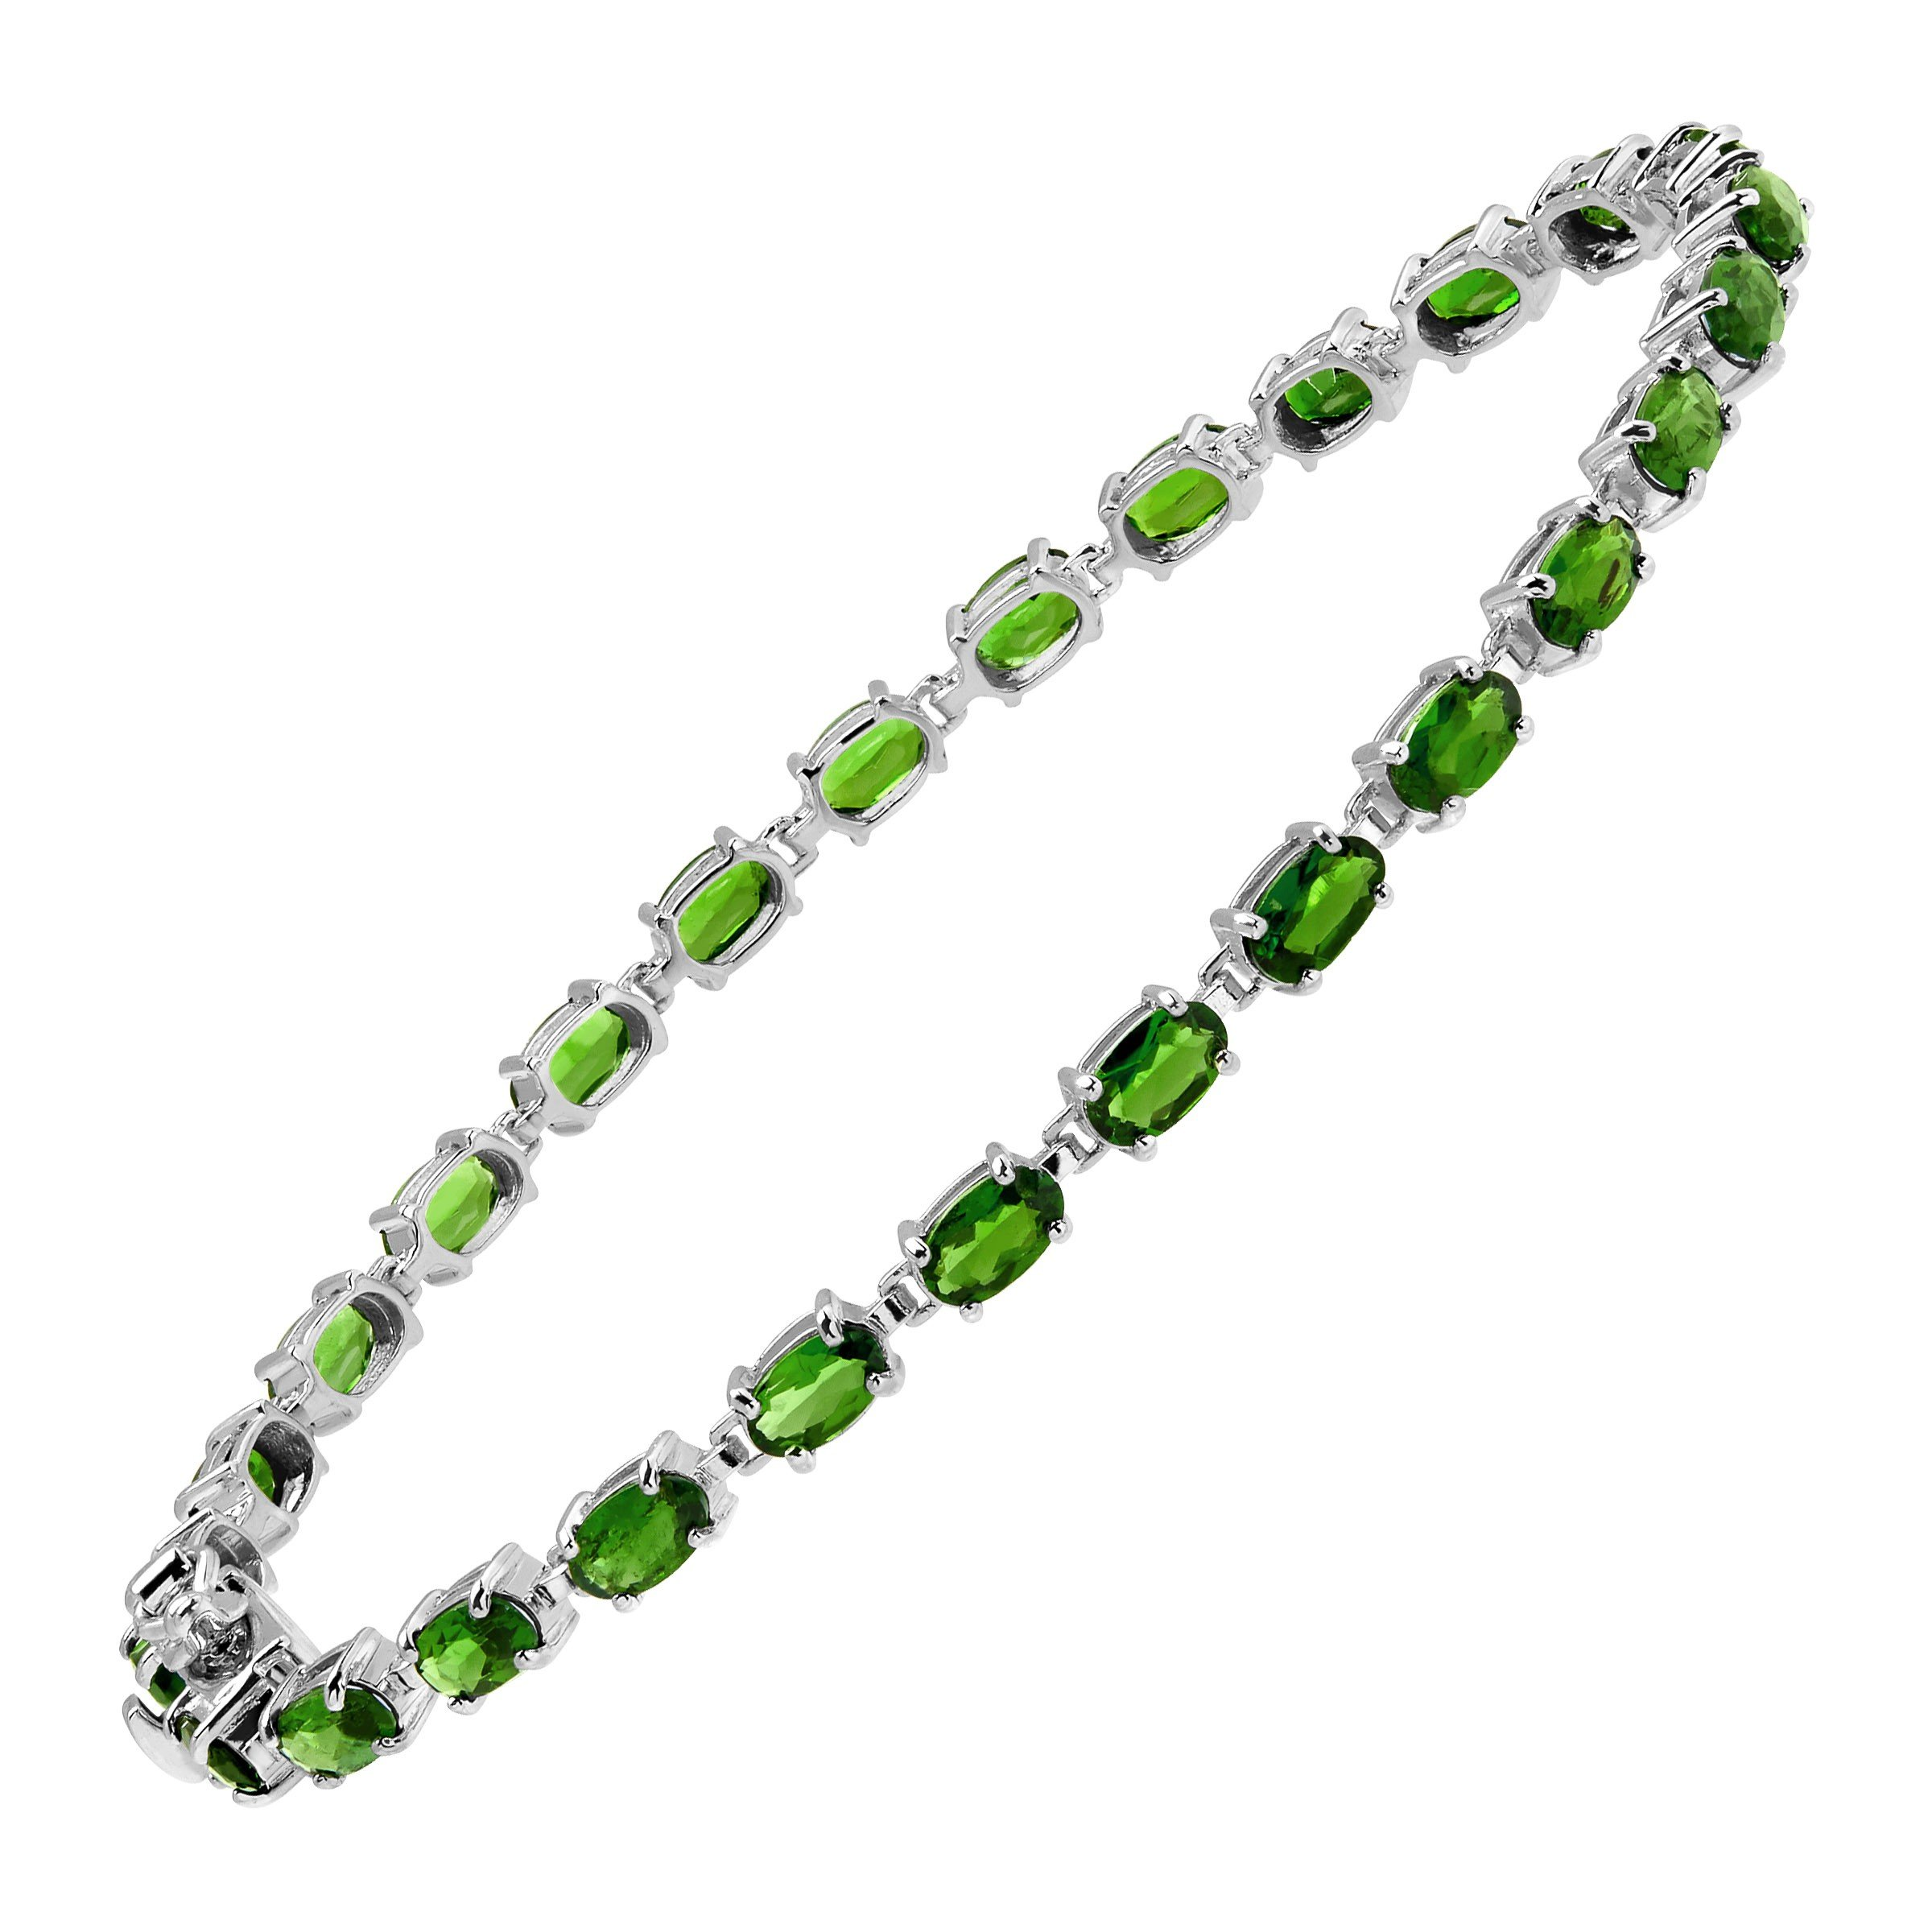 5 1/2 ct Natural Chrome Diopside Tennis Bracelet in Sterling Silver, 7.25''